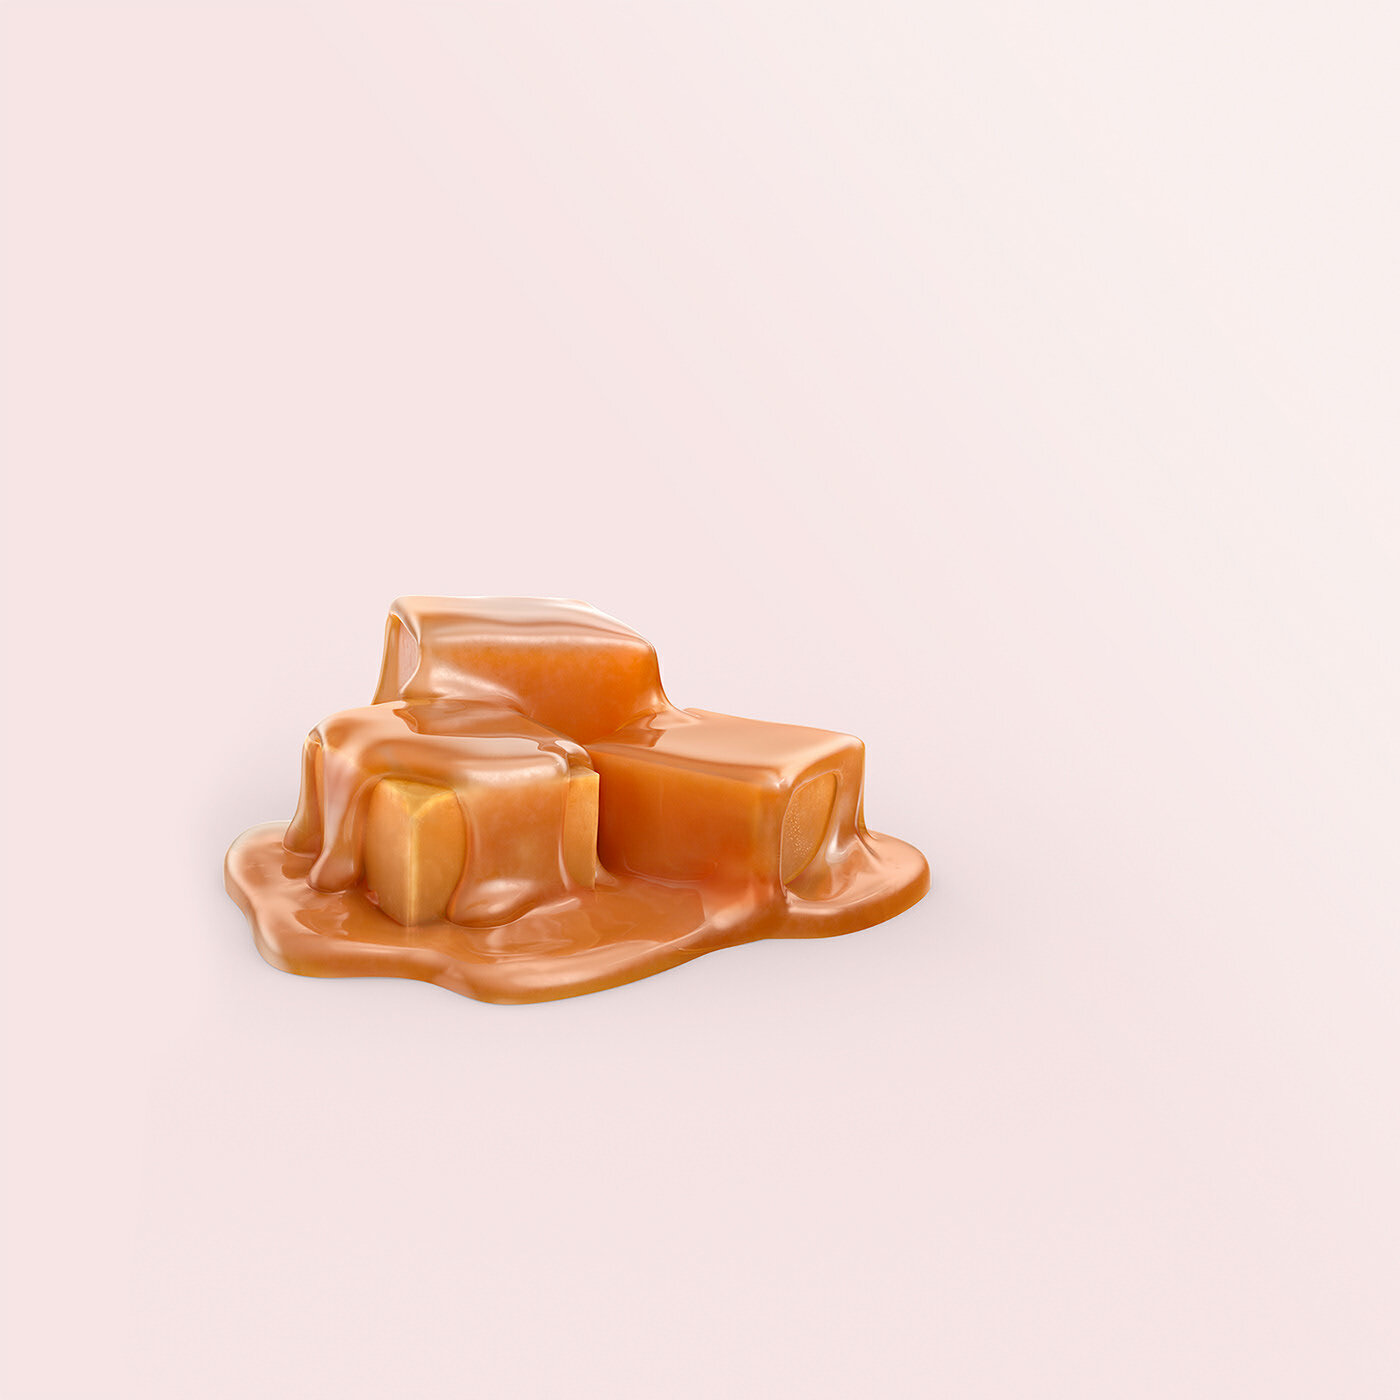 cgi caramel cubes done for nestle gold lid by mechanix studios